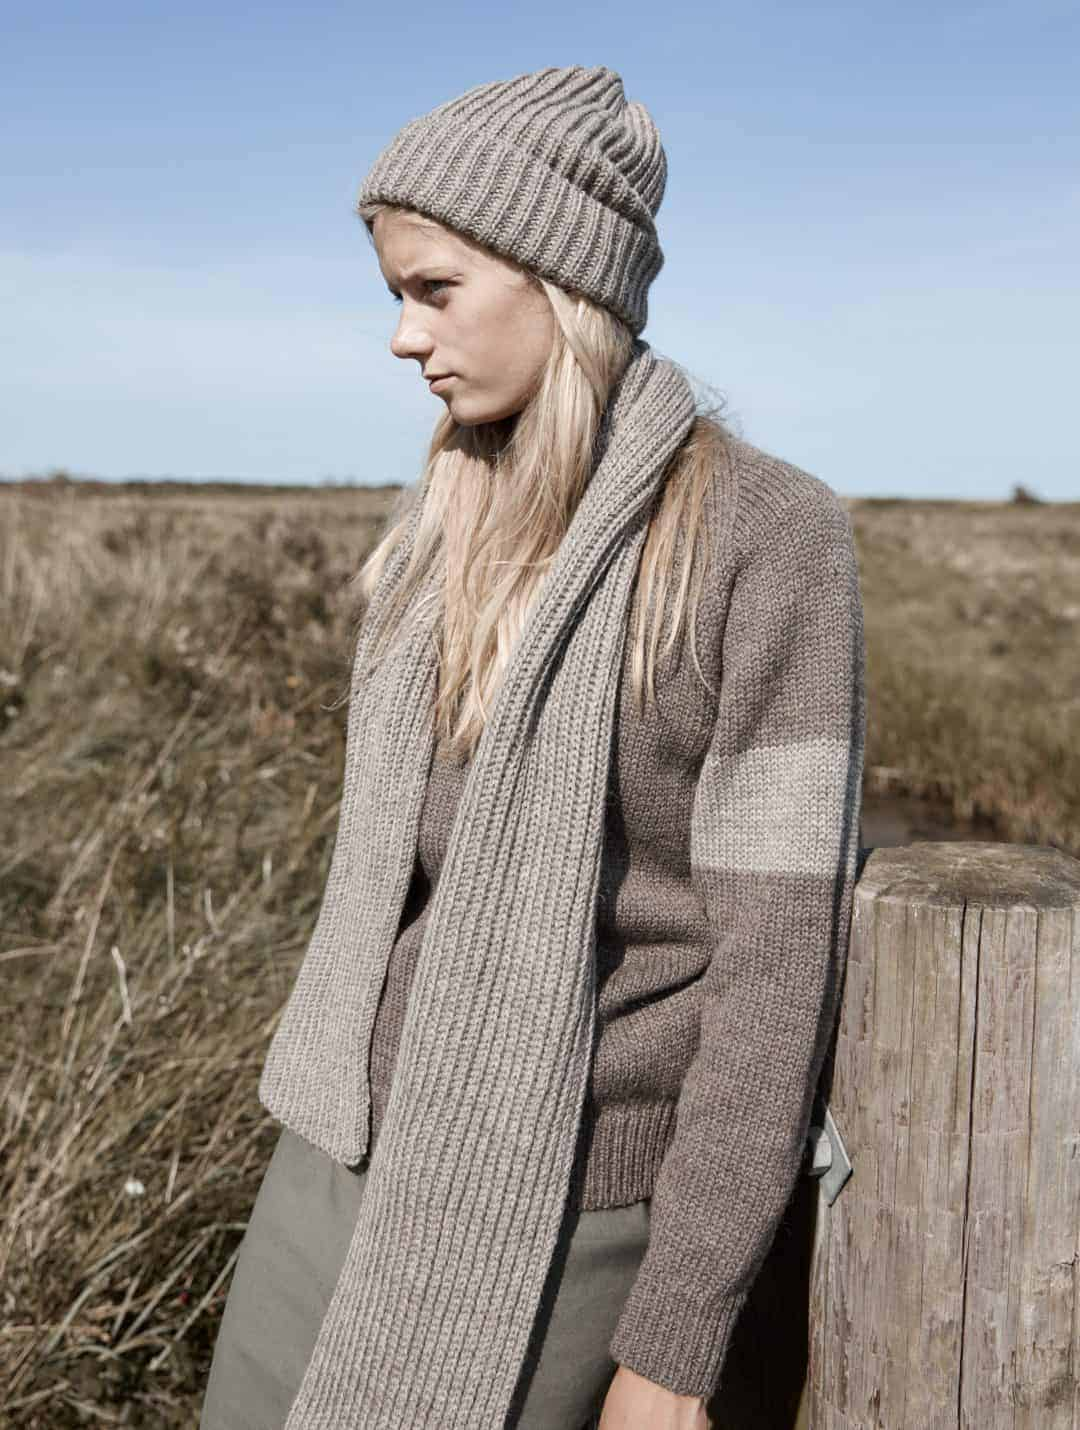 love this beige and brown jumper, hat and scarf from the new seasonal natural knitwear by izzy lane made in Britain using wool from her own flock of sheep. Click through to see the whole beautiful new collection